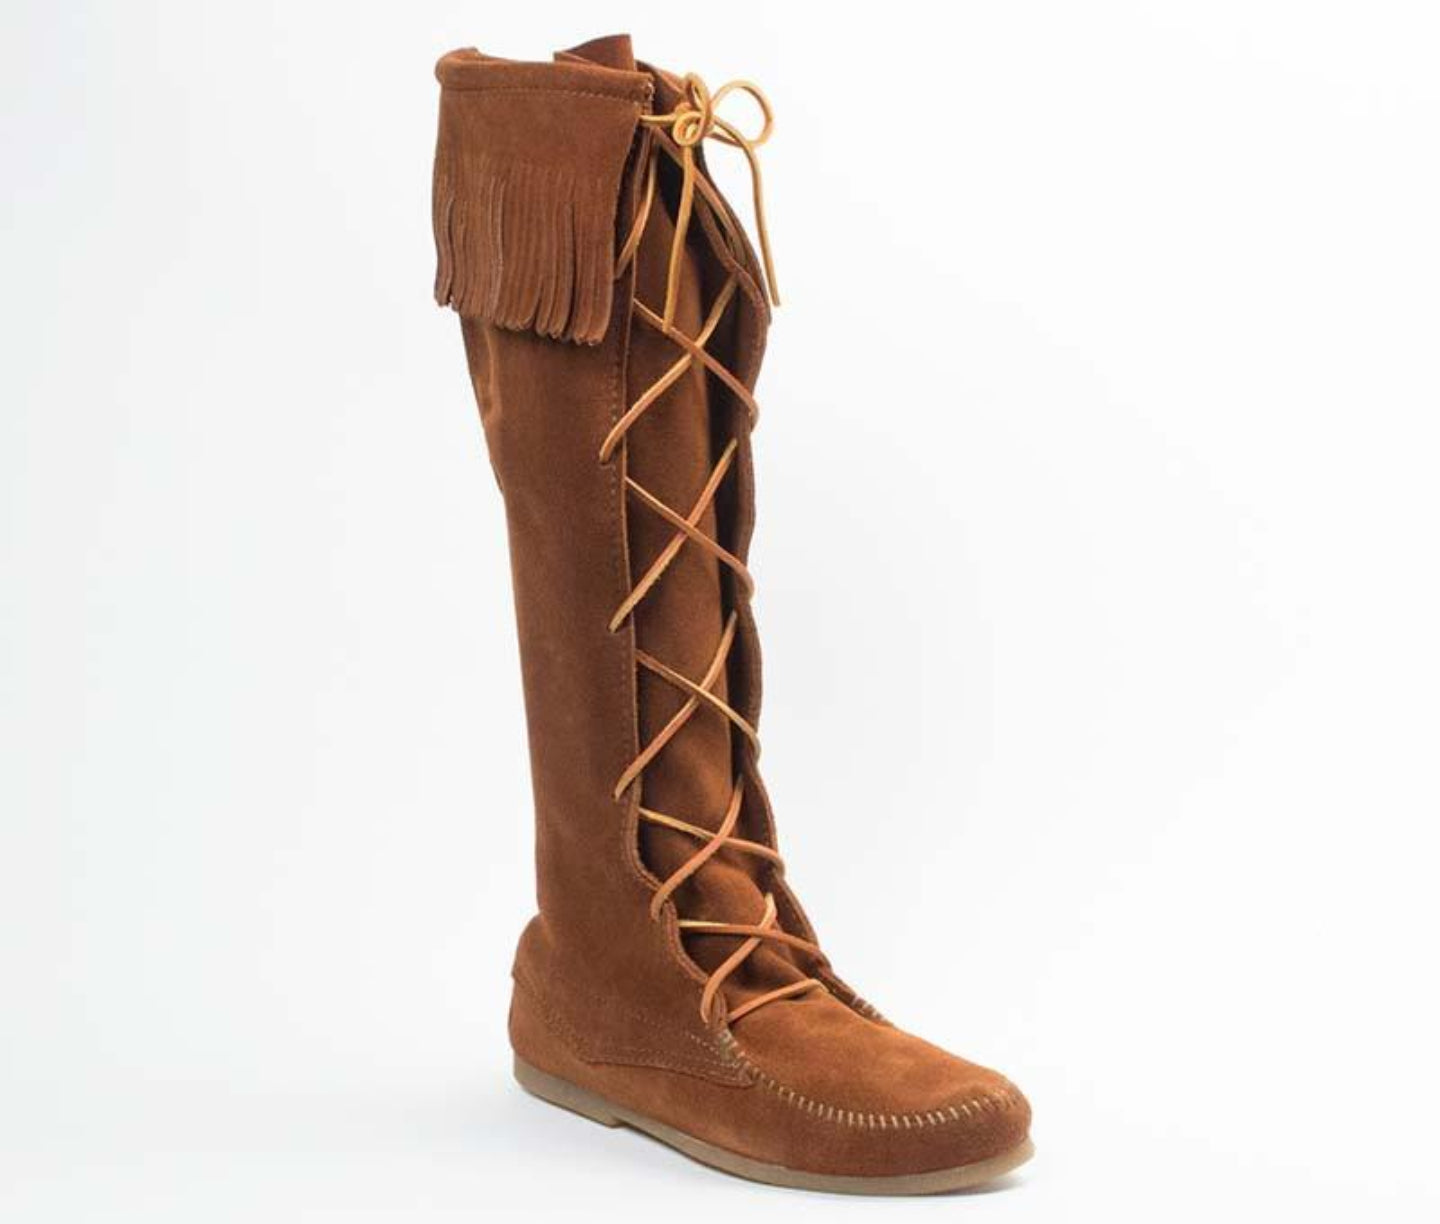 Front Lace Knee High Boot in Brown from 3/4 Angle View